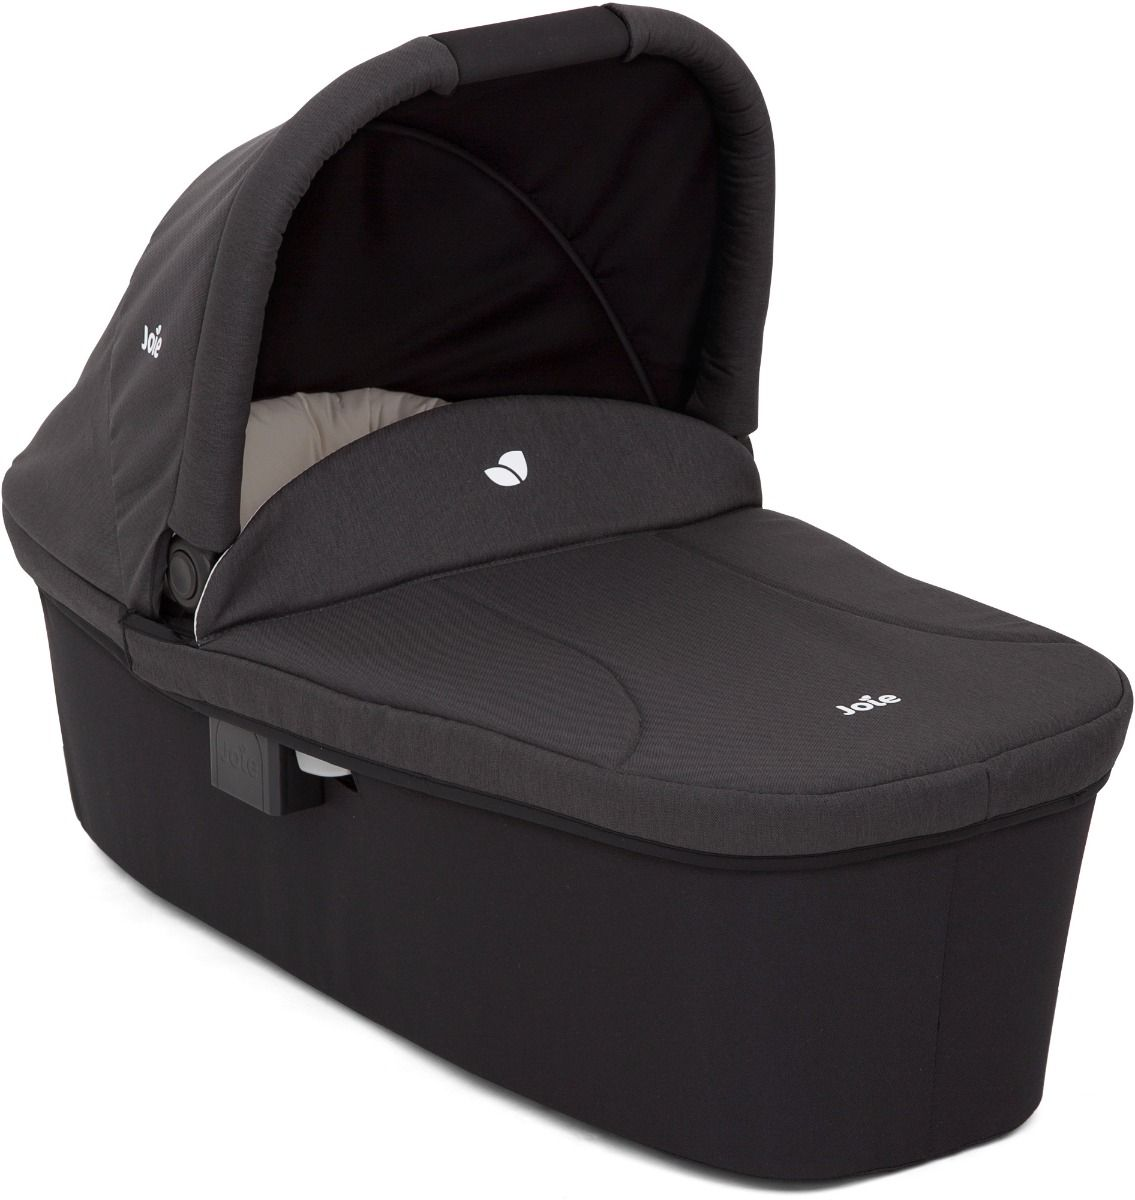 Joie Litetrax Carrycot Ember In 2020 Baby Car Seats Joie Travel System